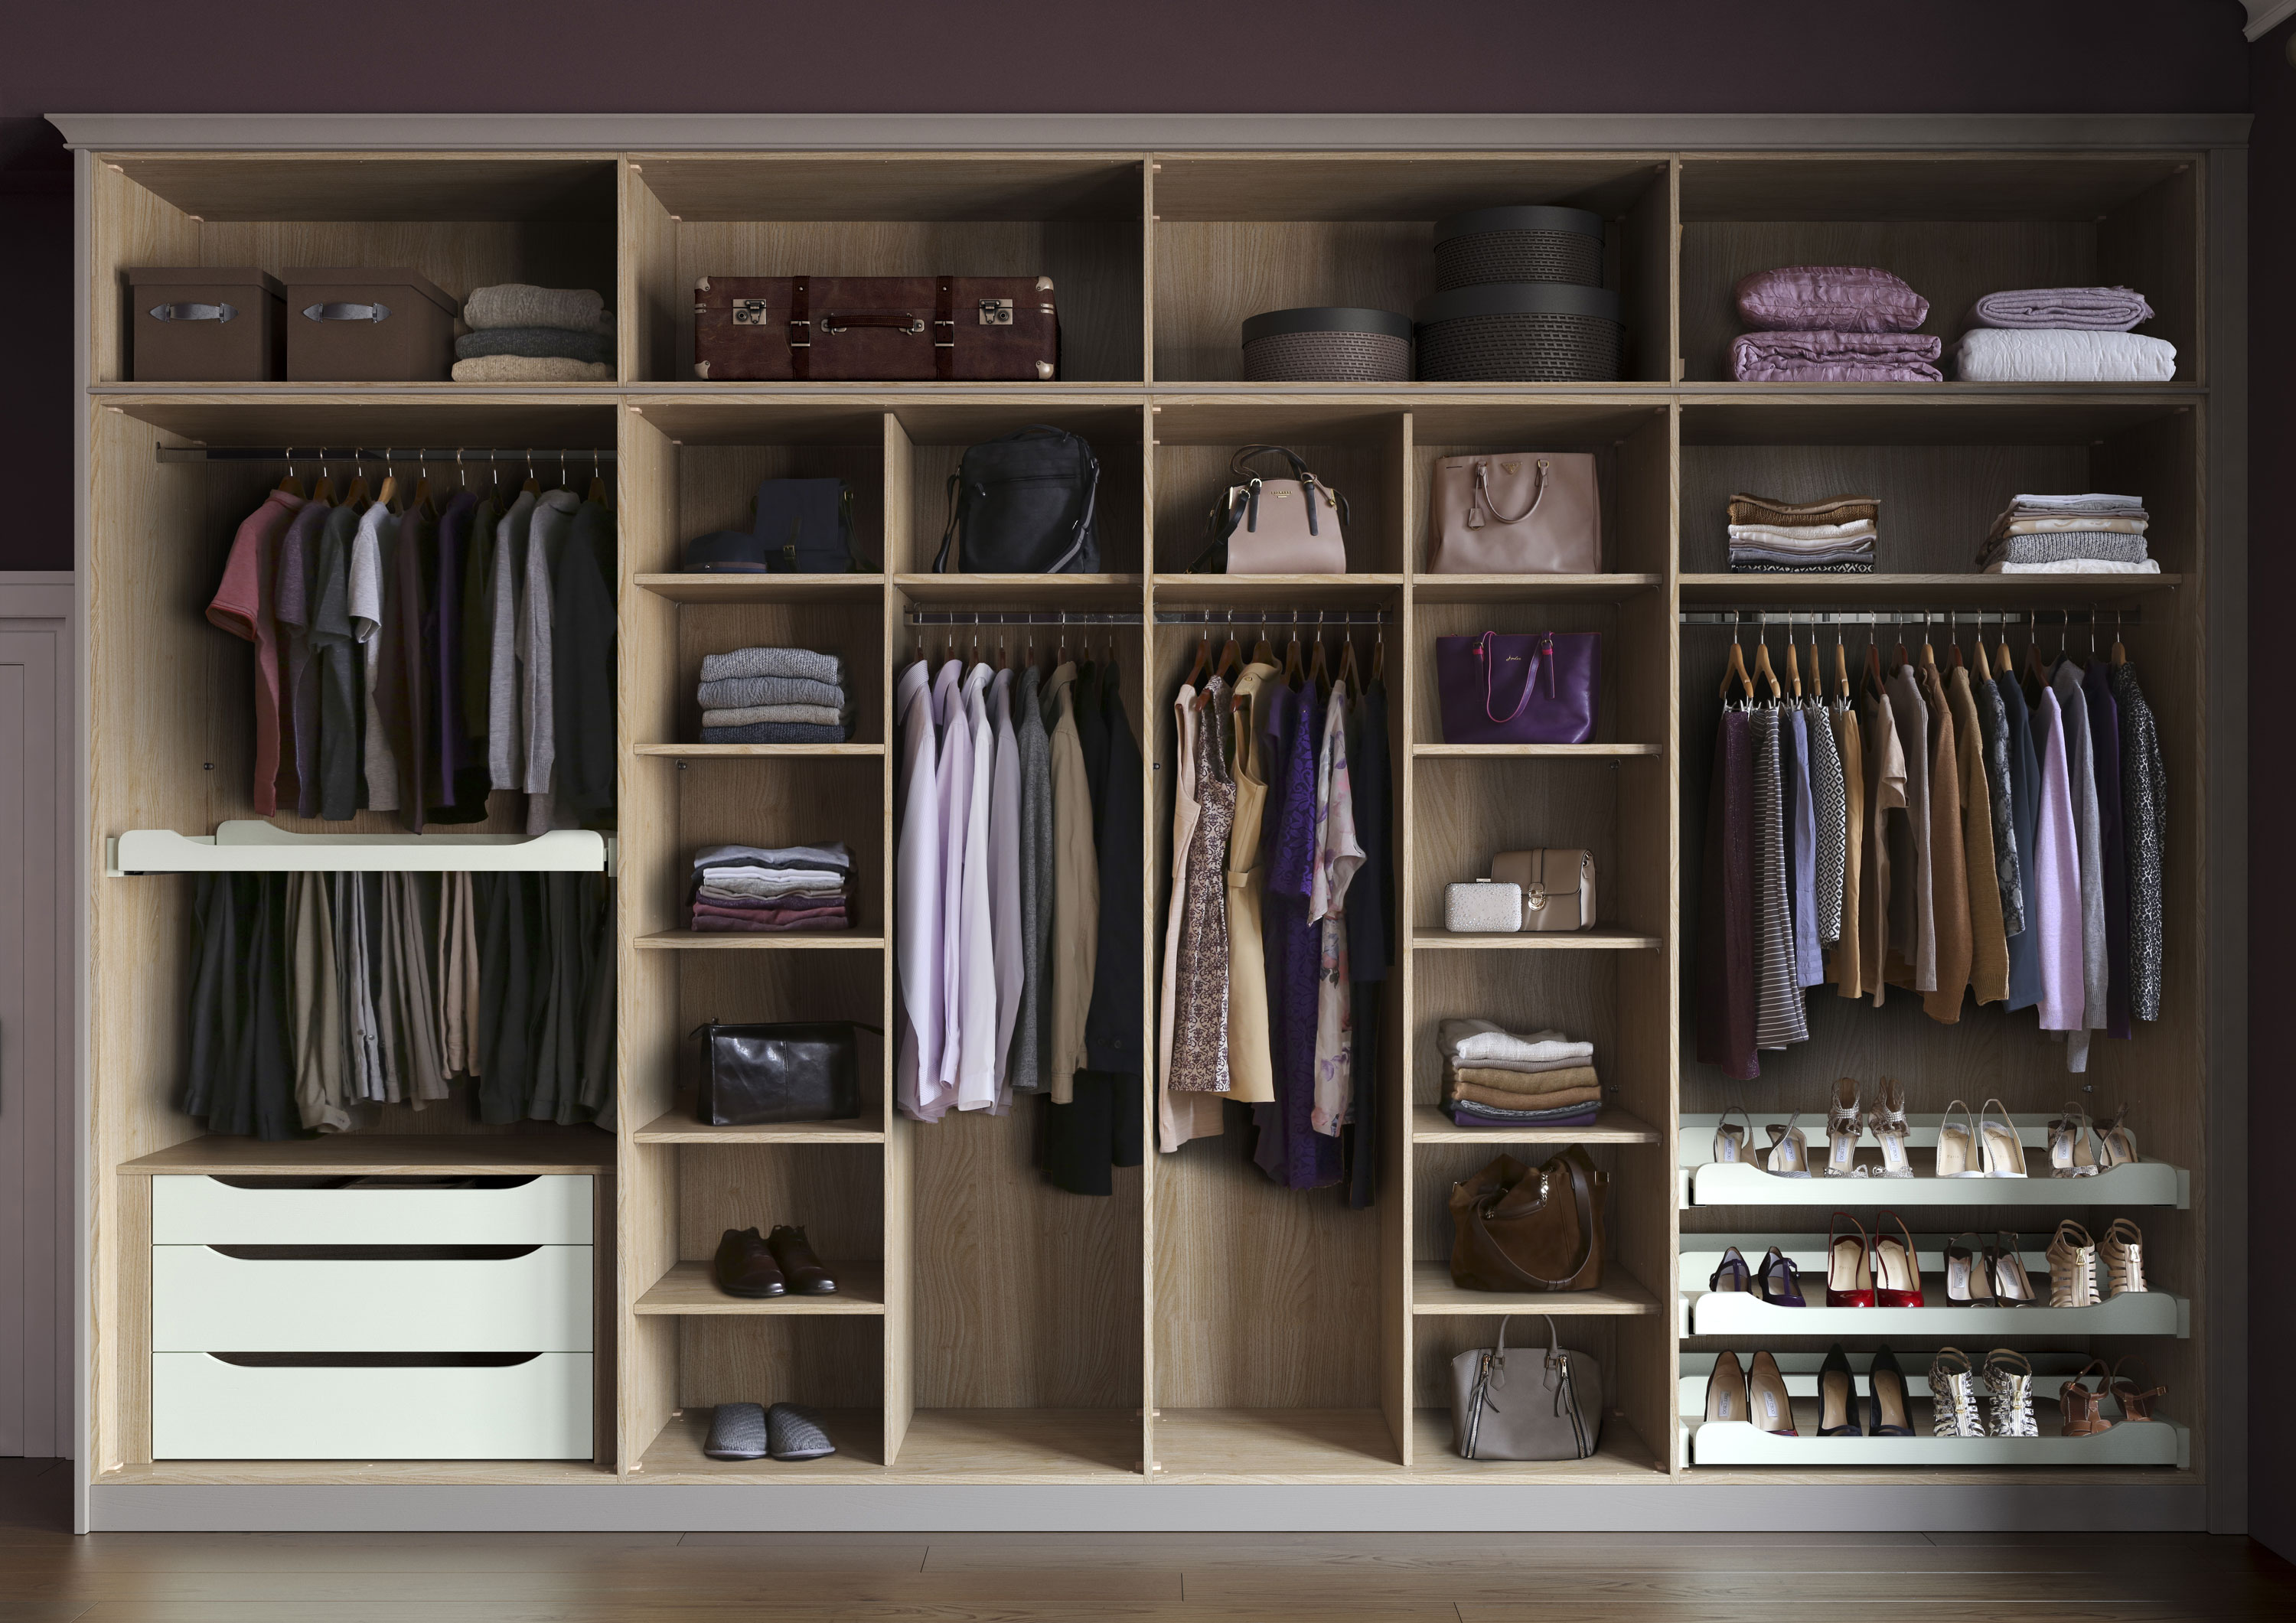 Interior-storage-fitted-wardrobe